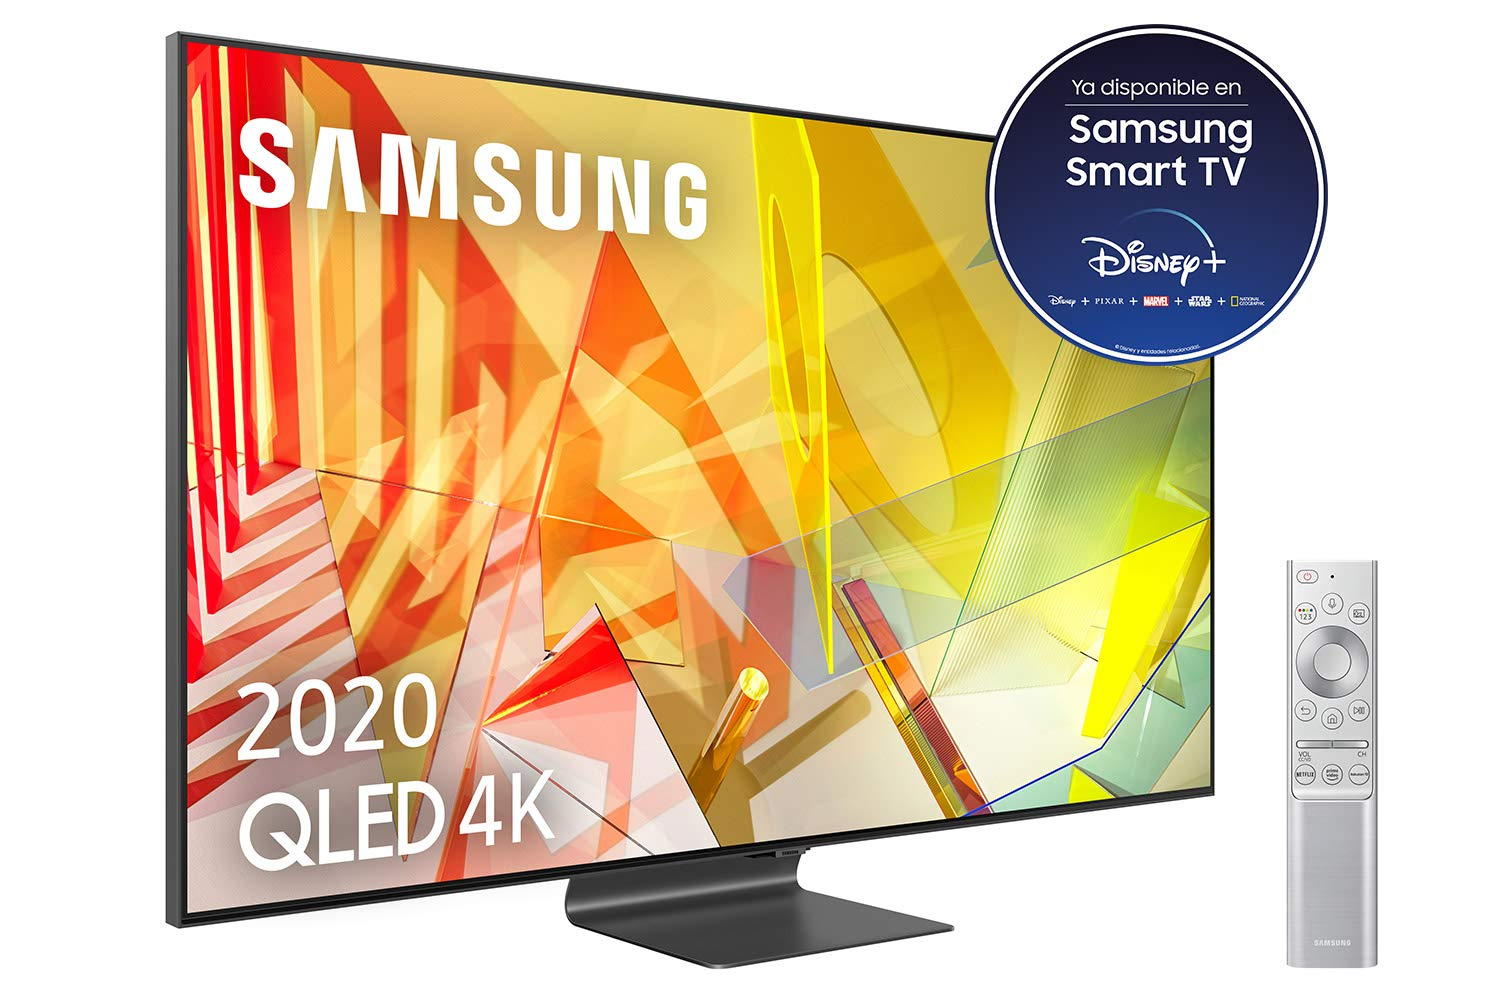 Samsung QLED 4K 2020 55Q95T - Smart TV de 55